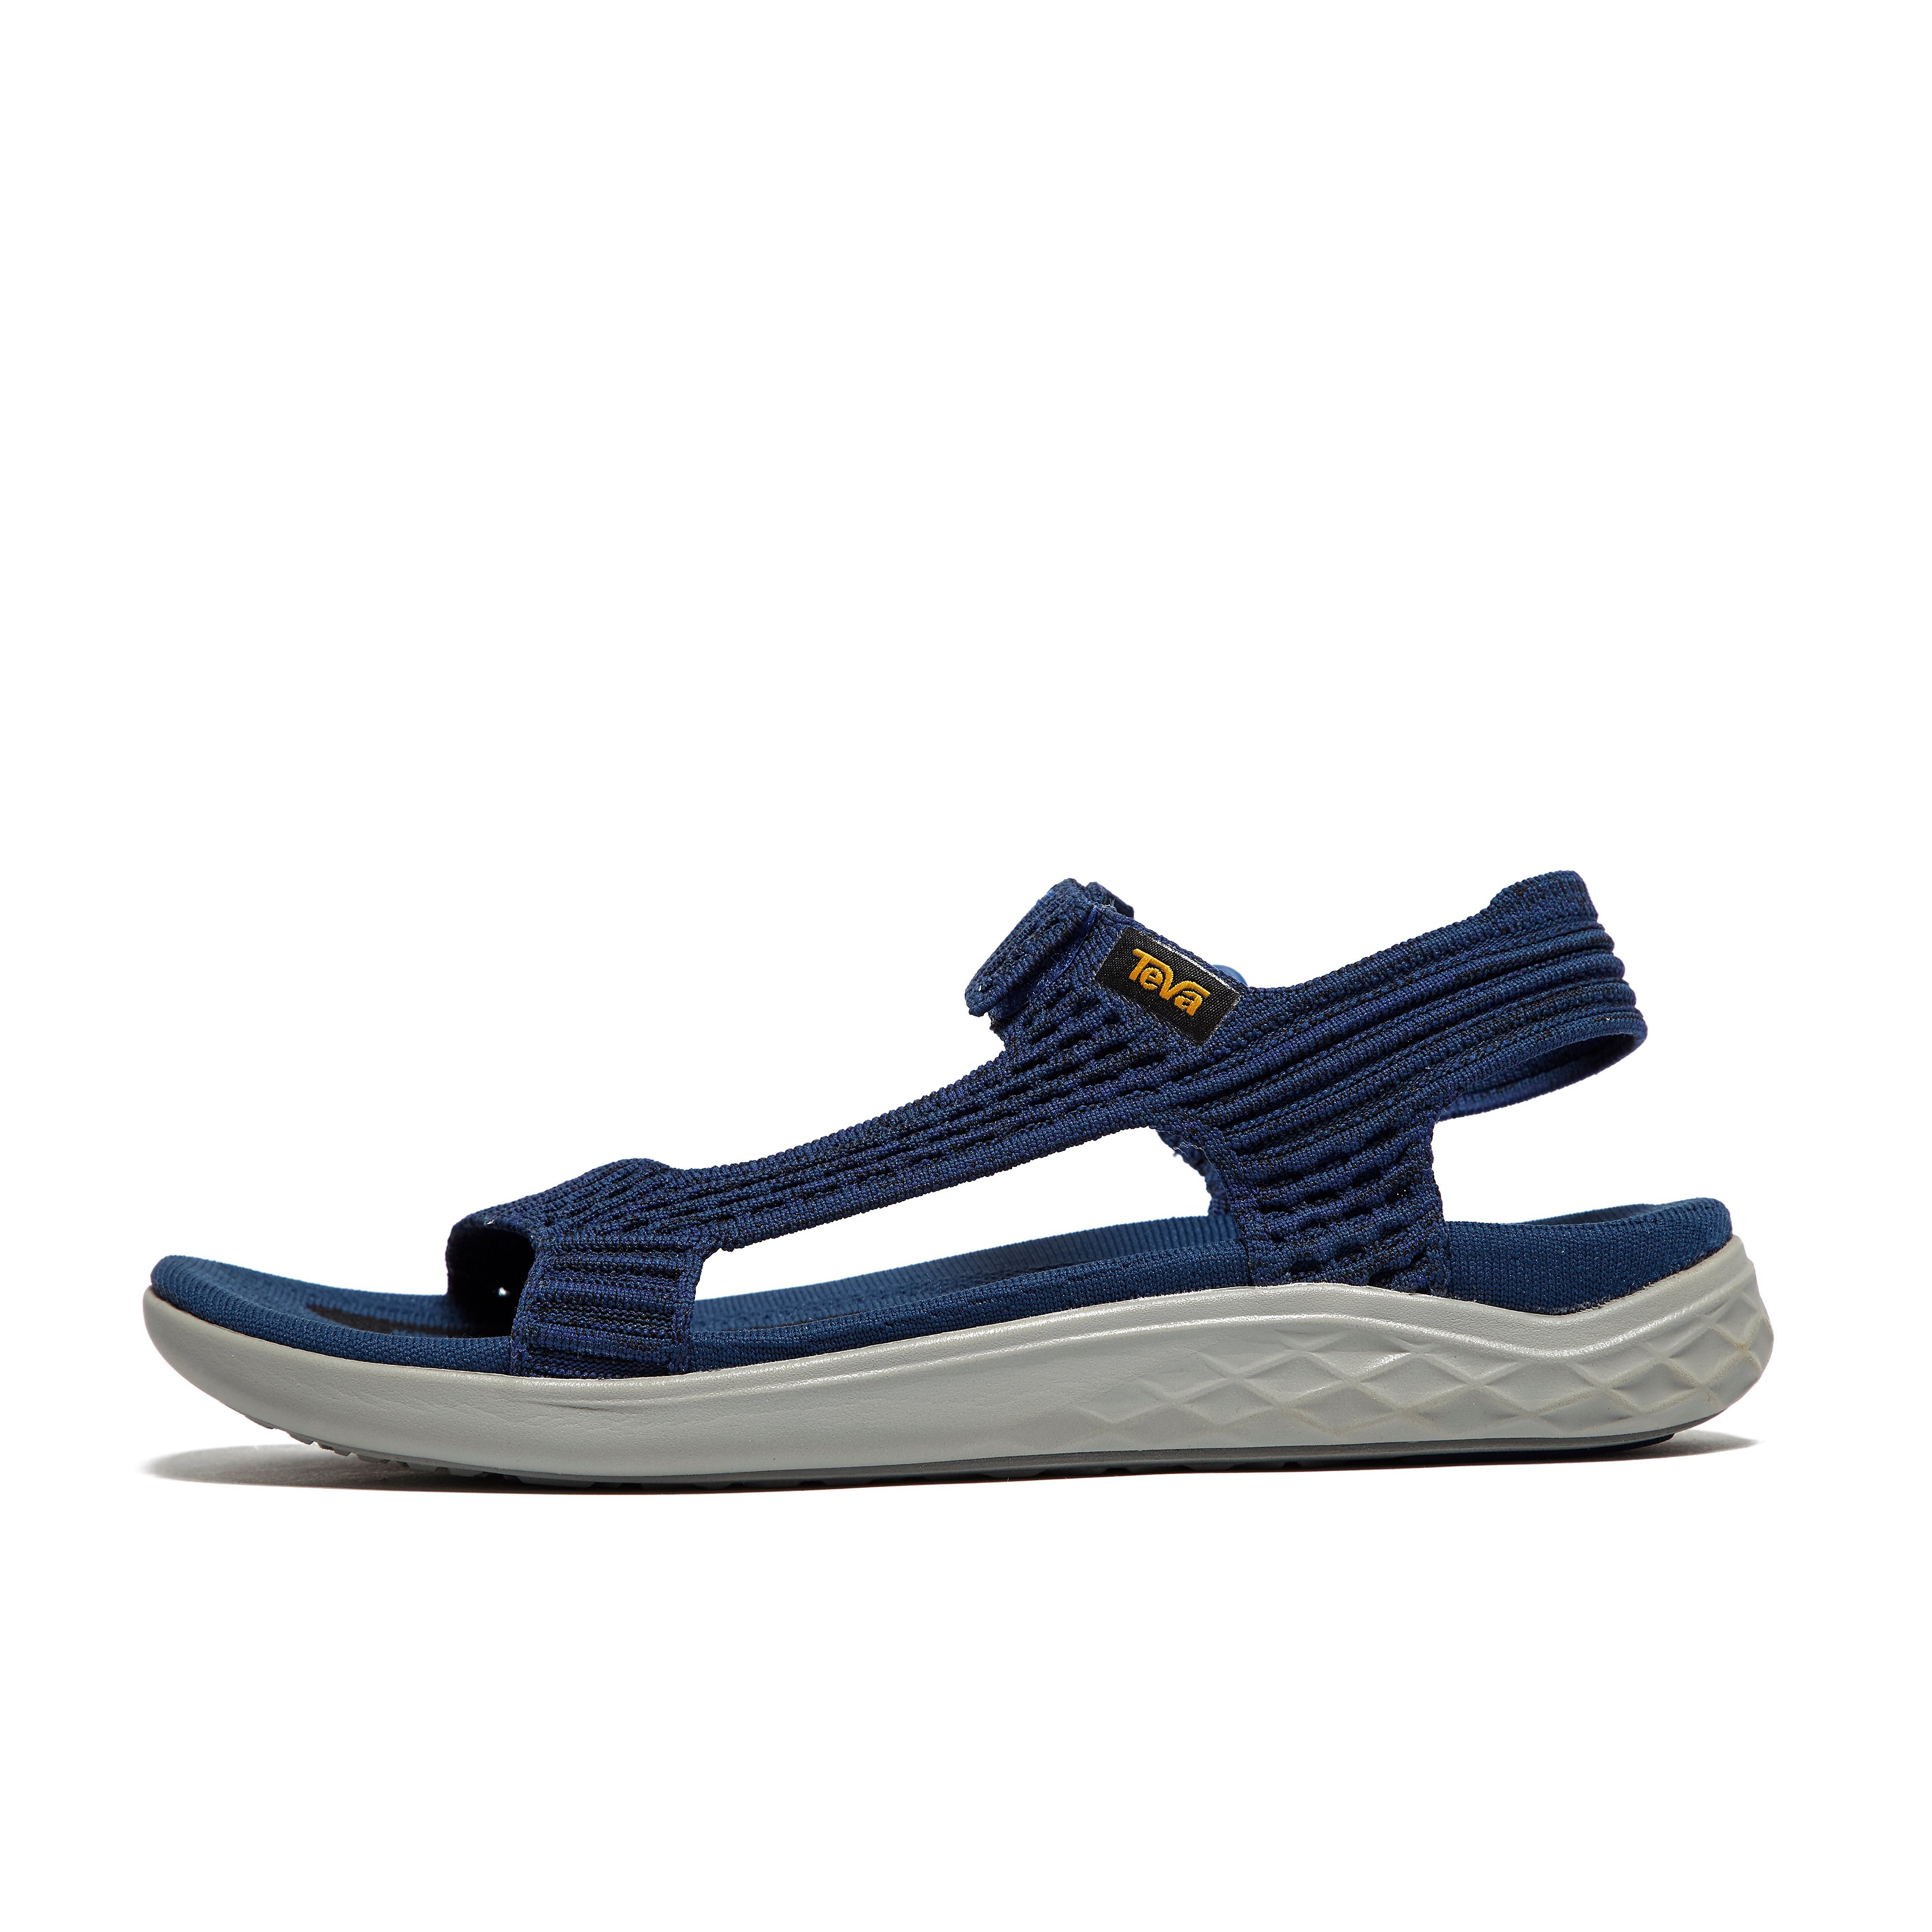 Teva Terra-Float 2 Knit Universal Men's Walking Sandal